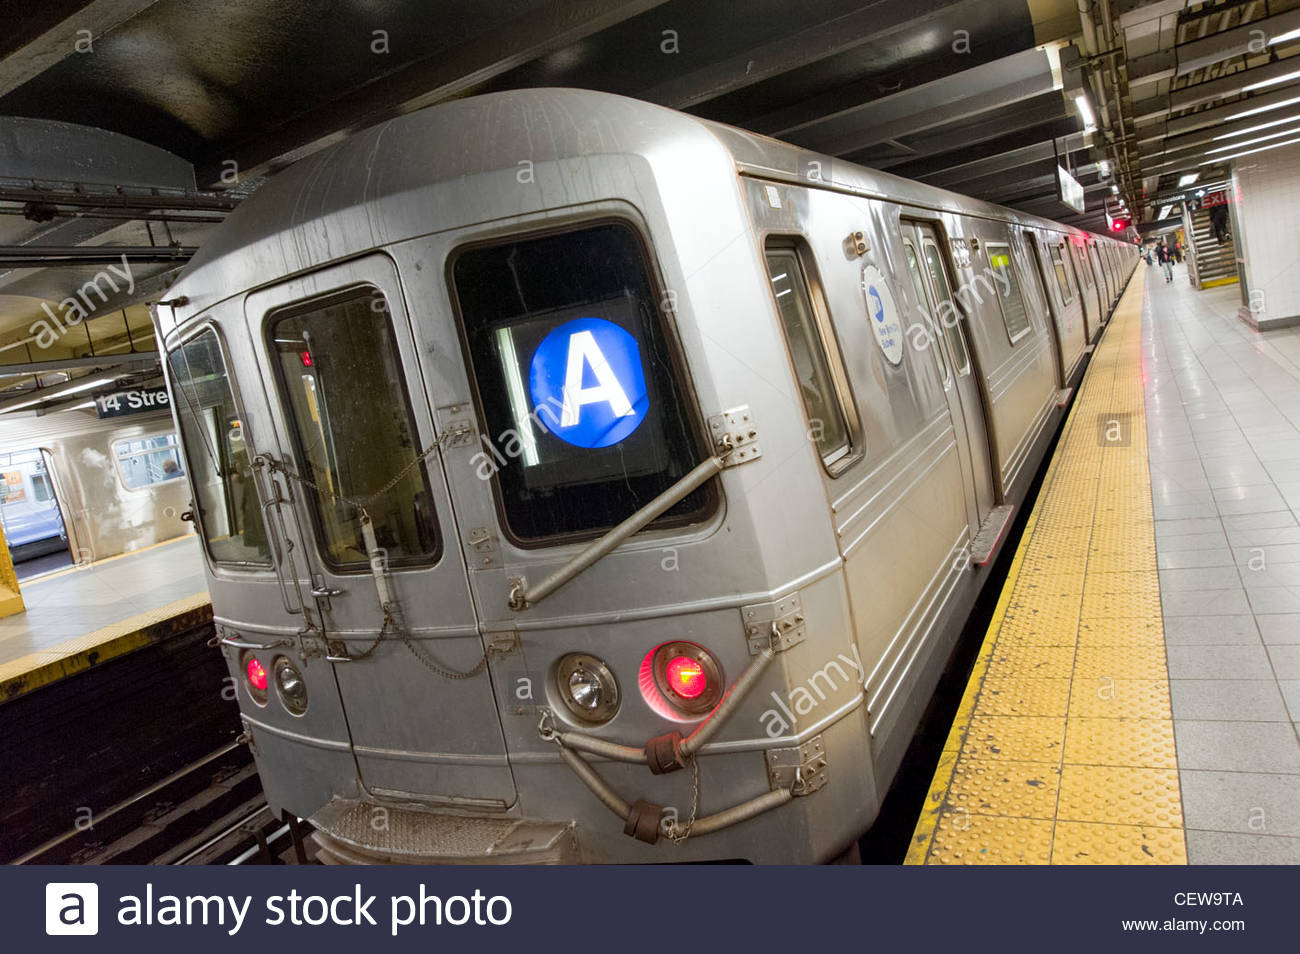 The A train New York subway line, New York City, America, USA - Stock Image